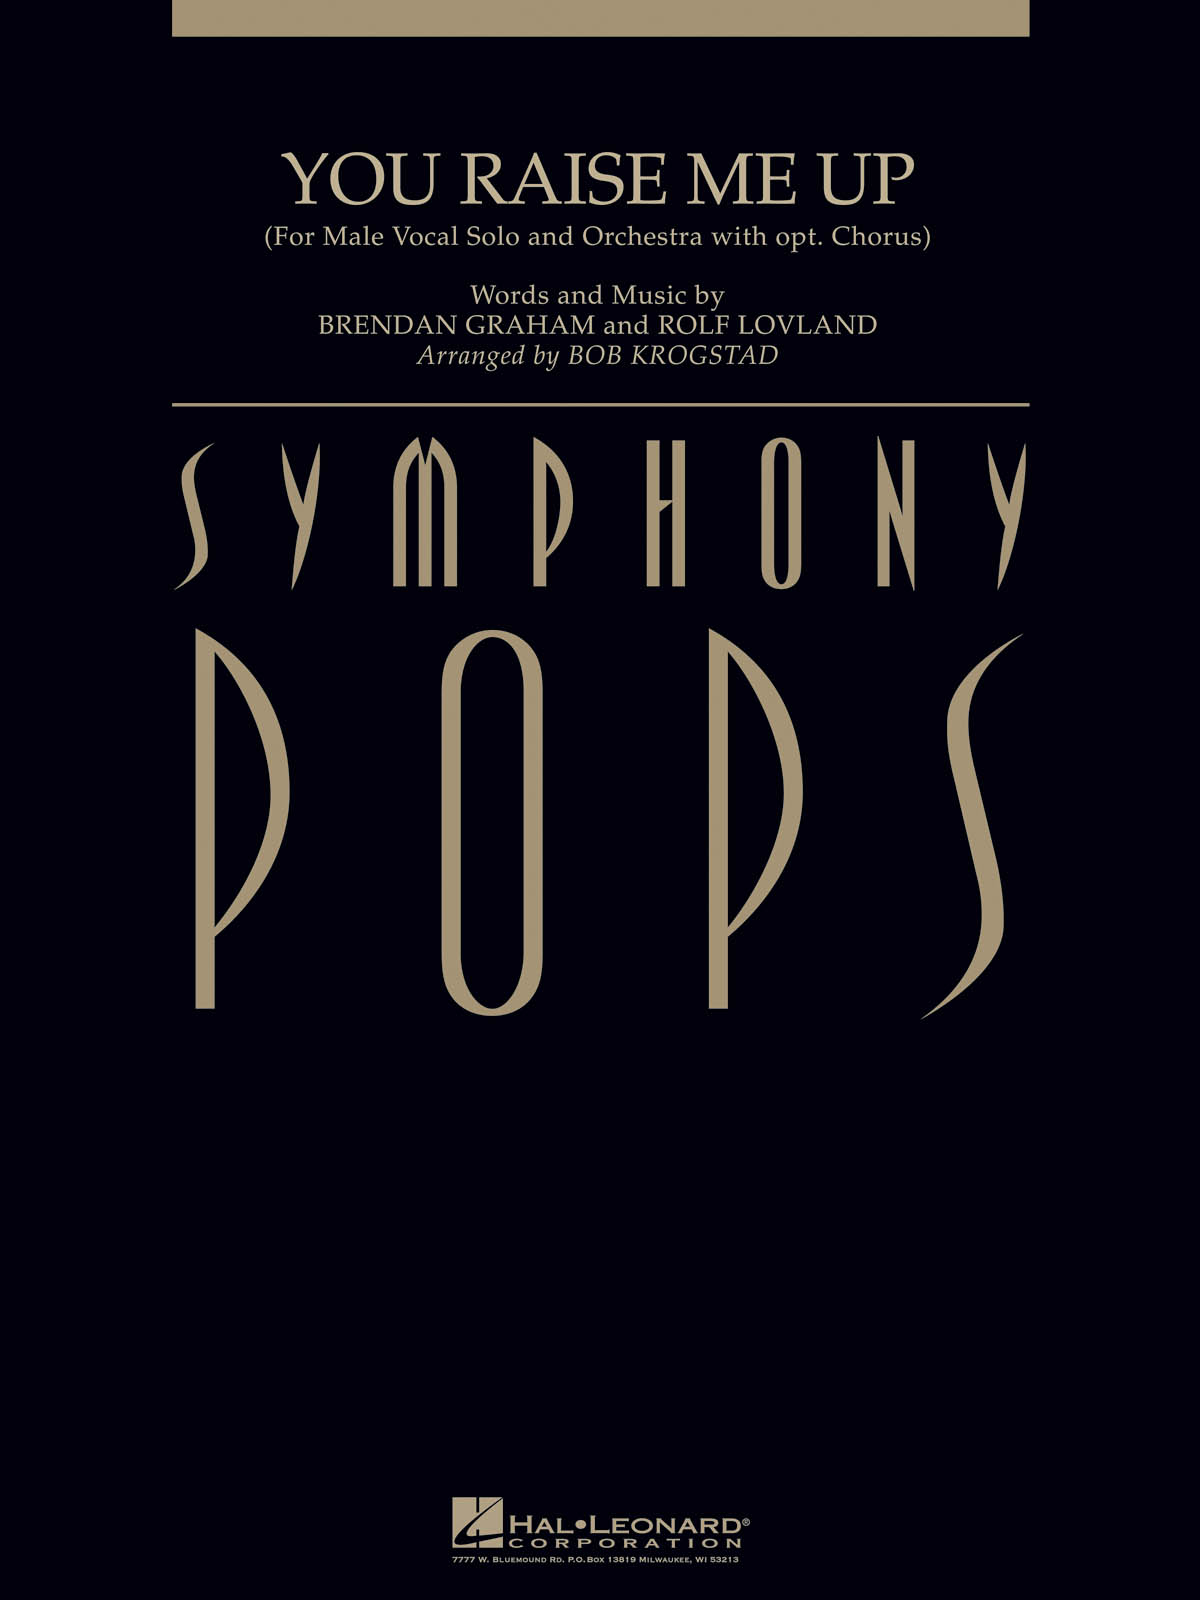 Brendan Graham Rolf Lovland: You Raise Me Up: Orchestra and Vocal: Score & Parts